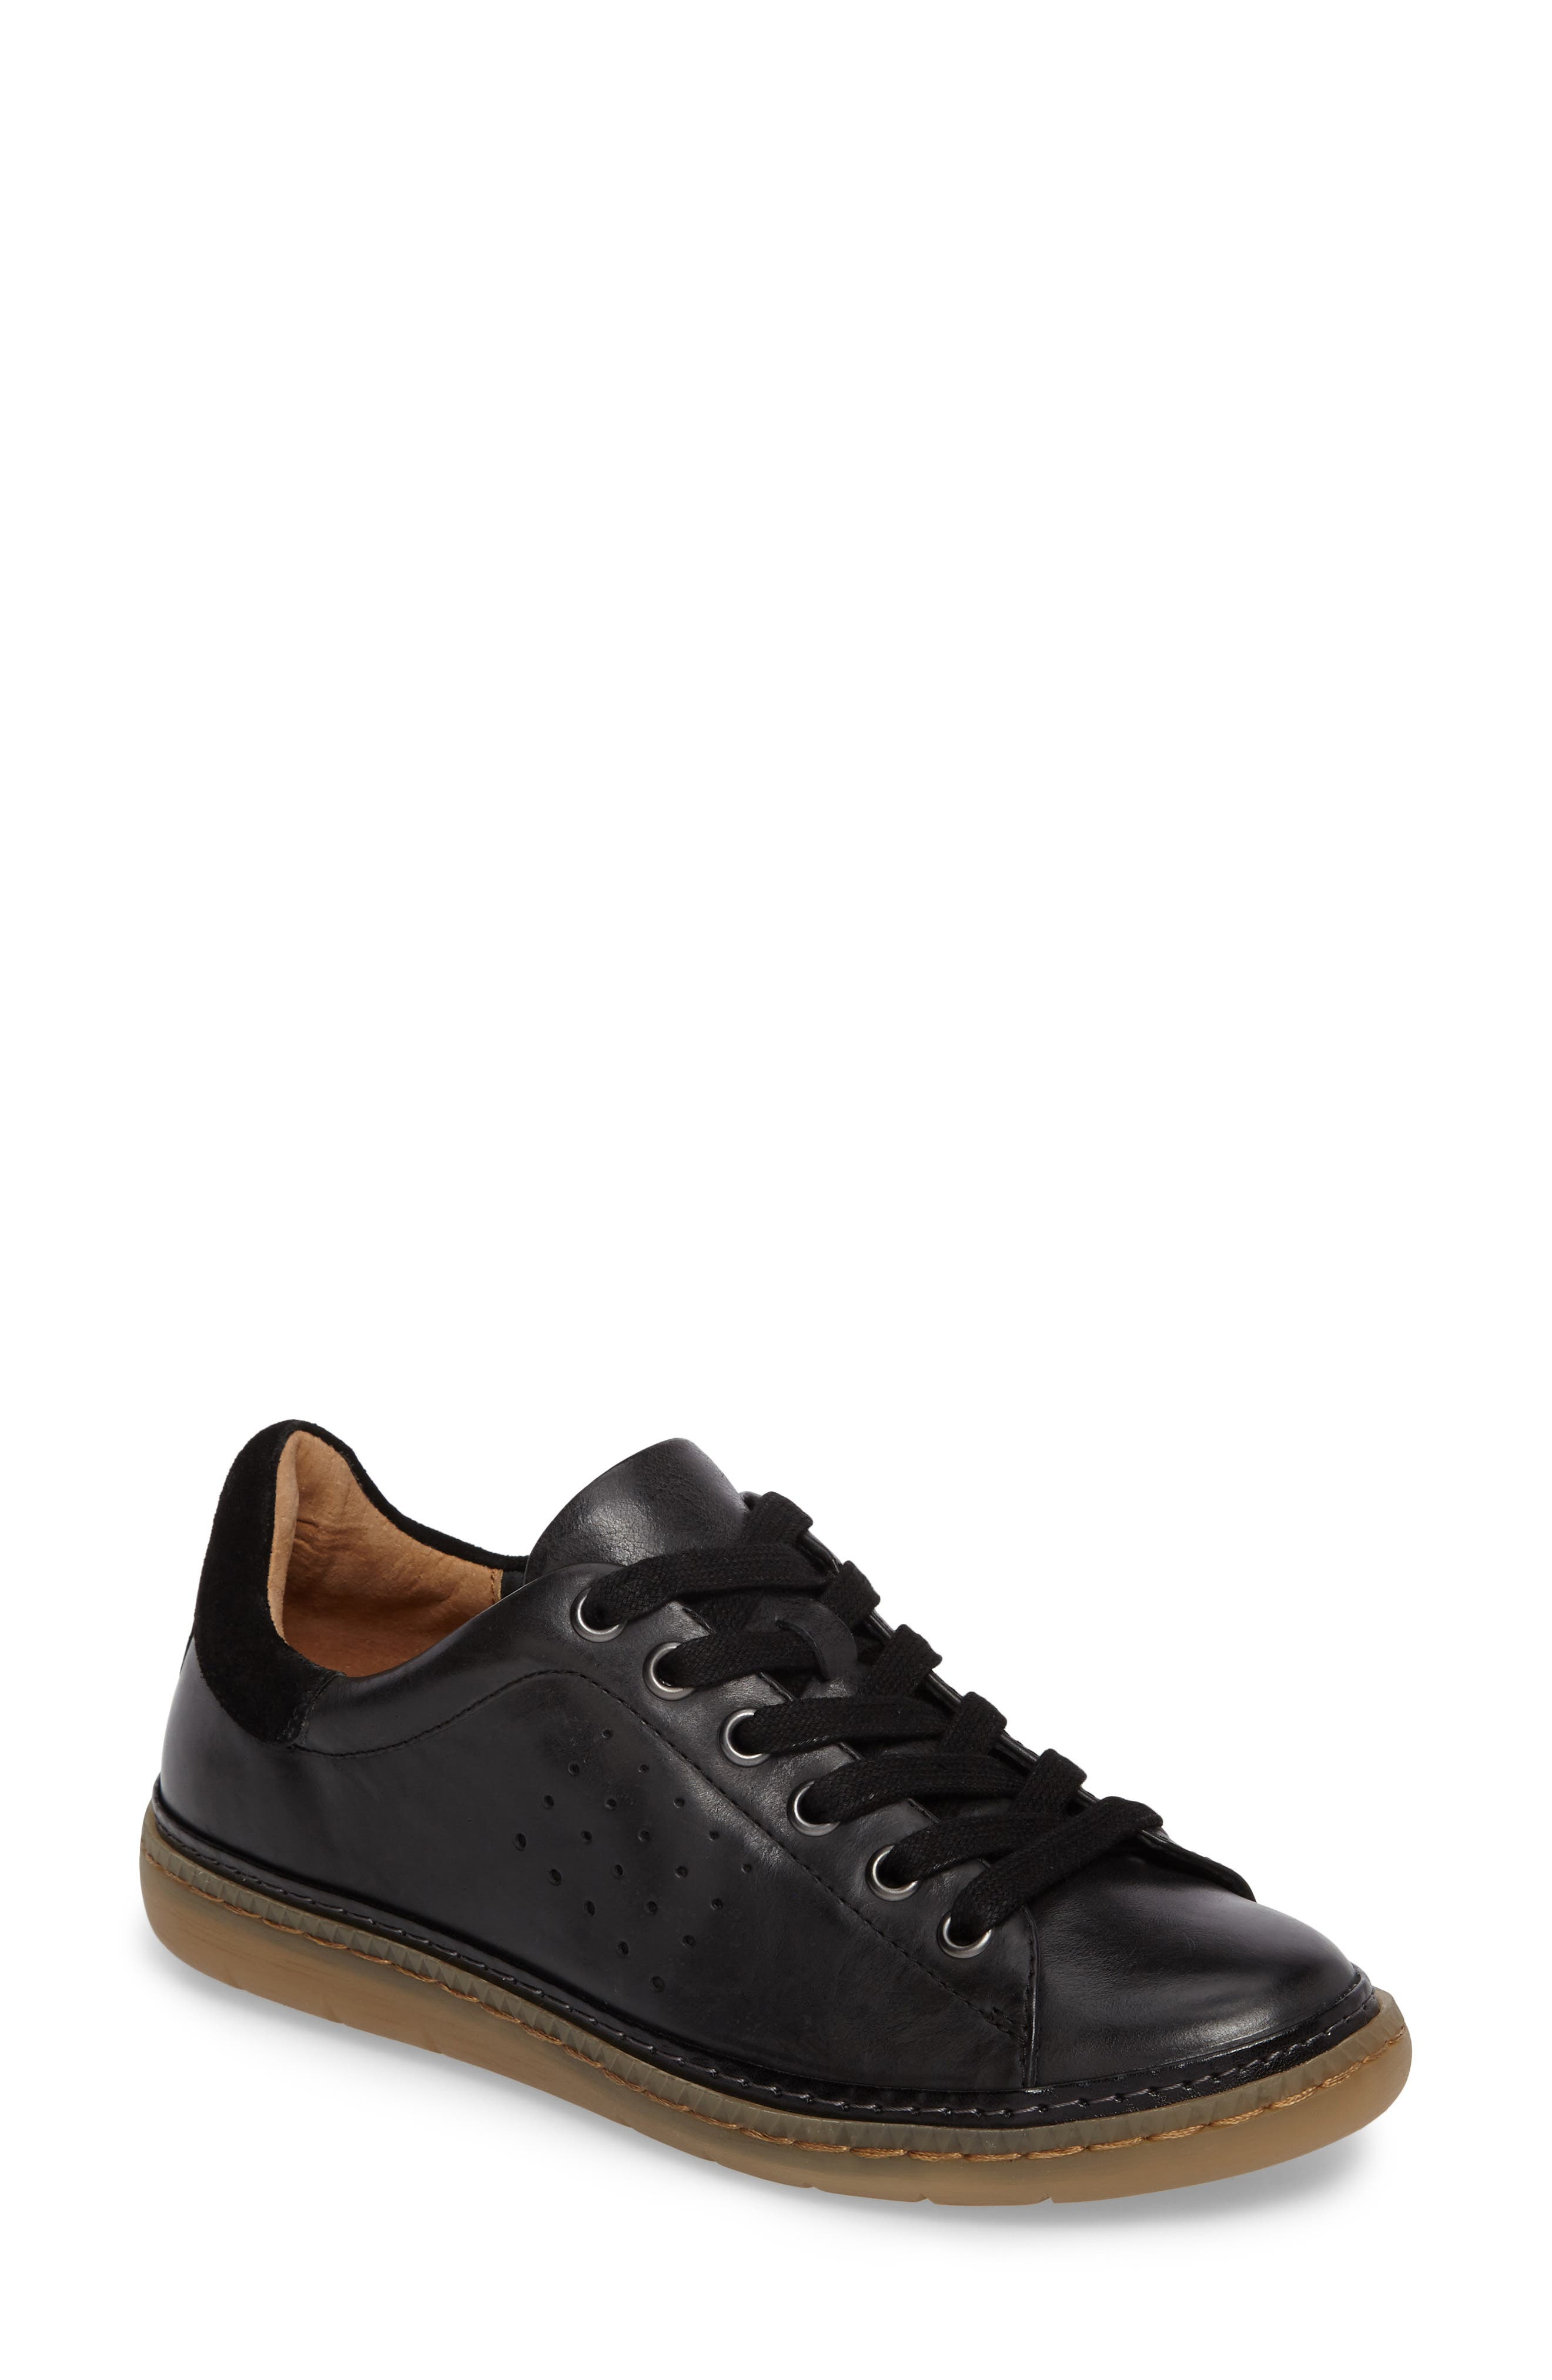 Arianna Sneaker,                         Main,                         color, Black Leather